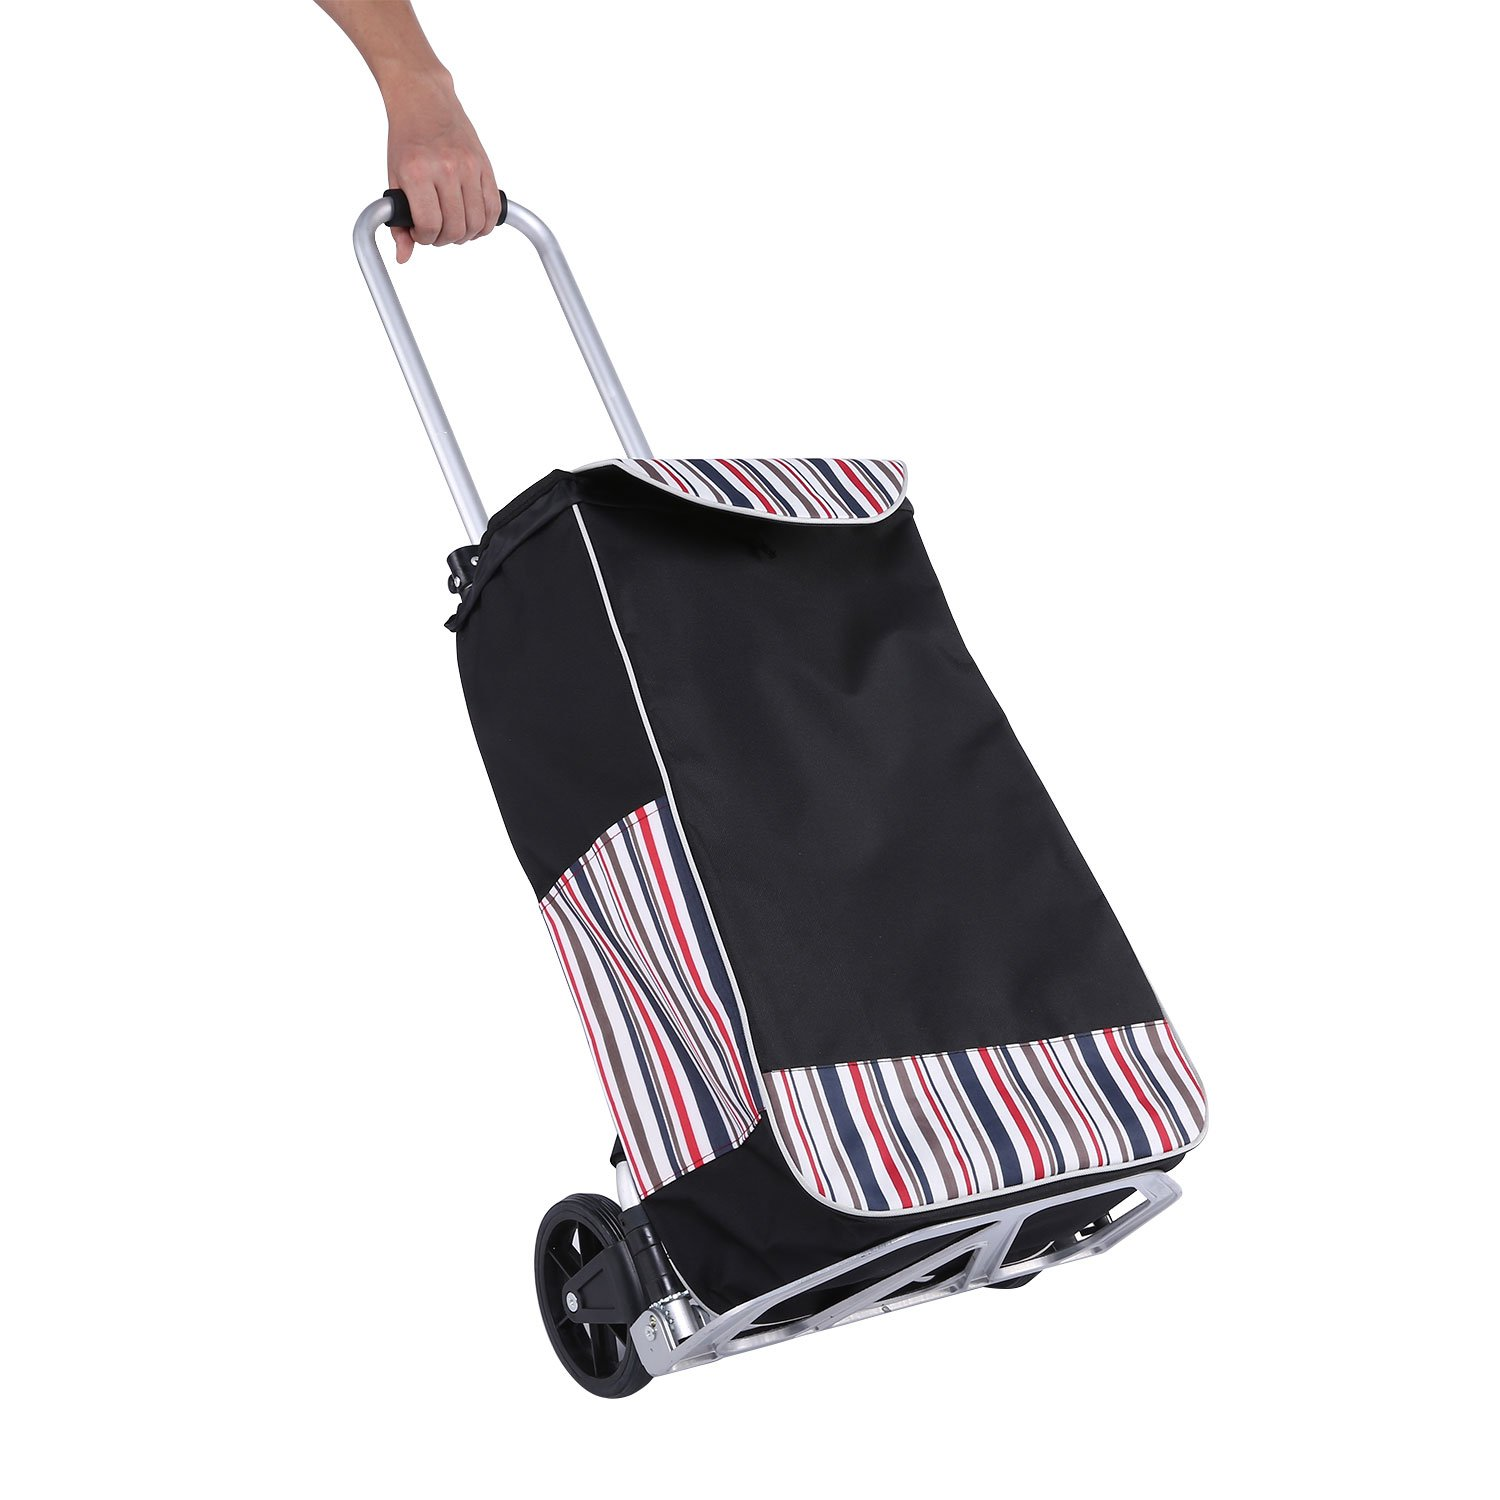 Meditool 180lb Shopping Trolley Dolly 38.5L Folding Hand Truck 2 in 1 Aluminum Grocery Cart 13.5 x14.9 x 37.8 inch